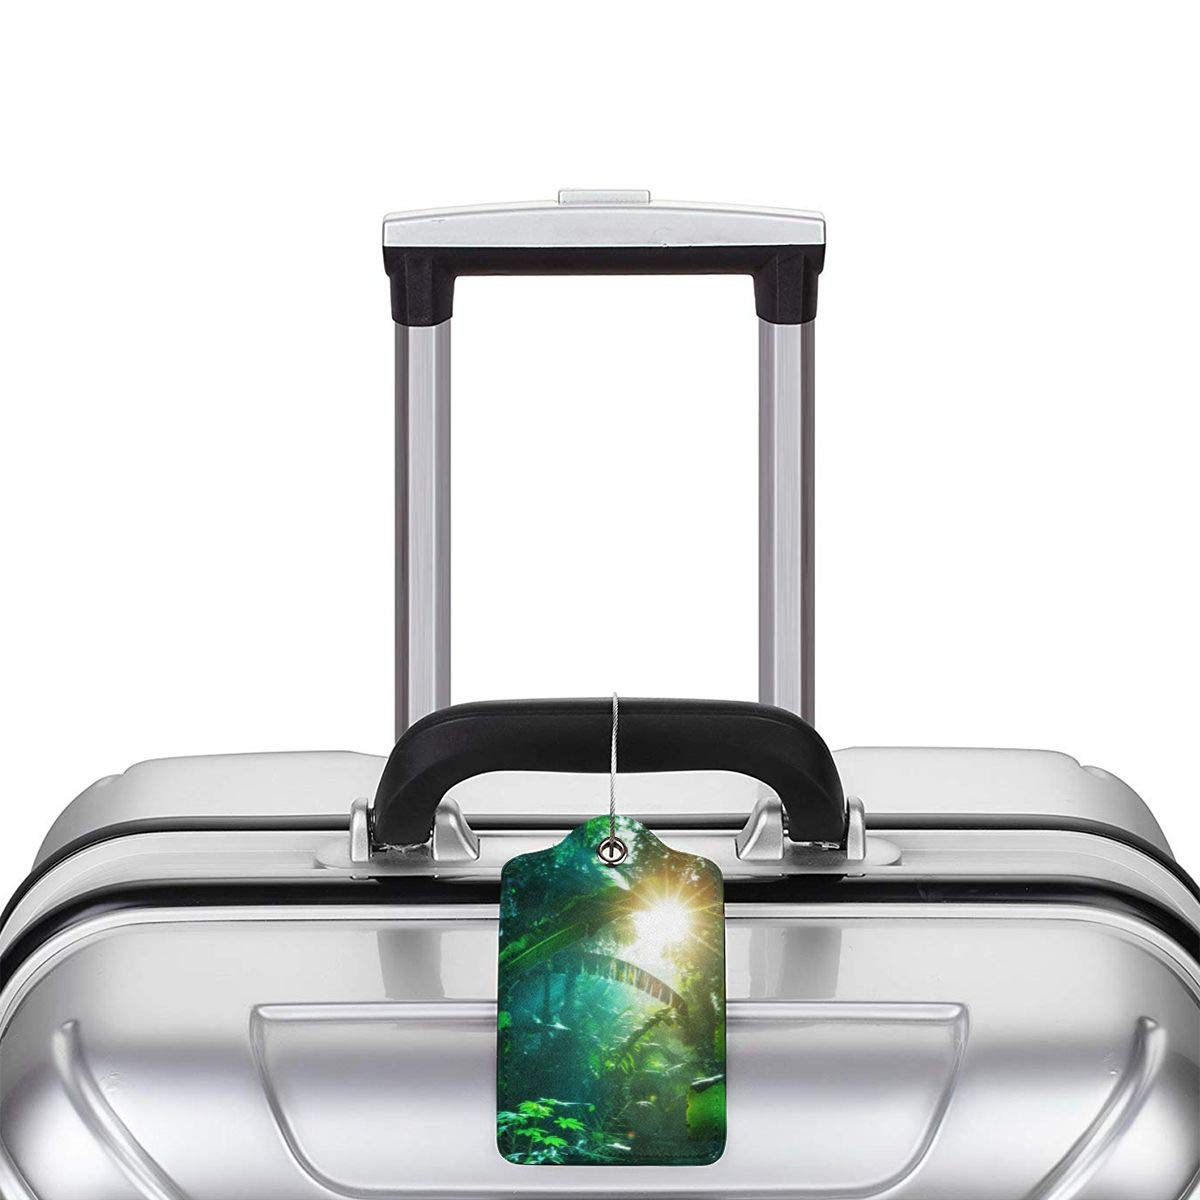 Tropical Jungle Green Banana Leaves Plants Forest Luggage Tag Label Travel Bag Label With Privacy Cover Luggage Tag Leather Personalized Suitcase Tag Travel Accessories